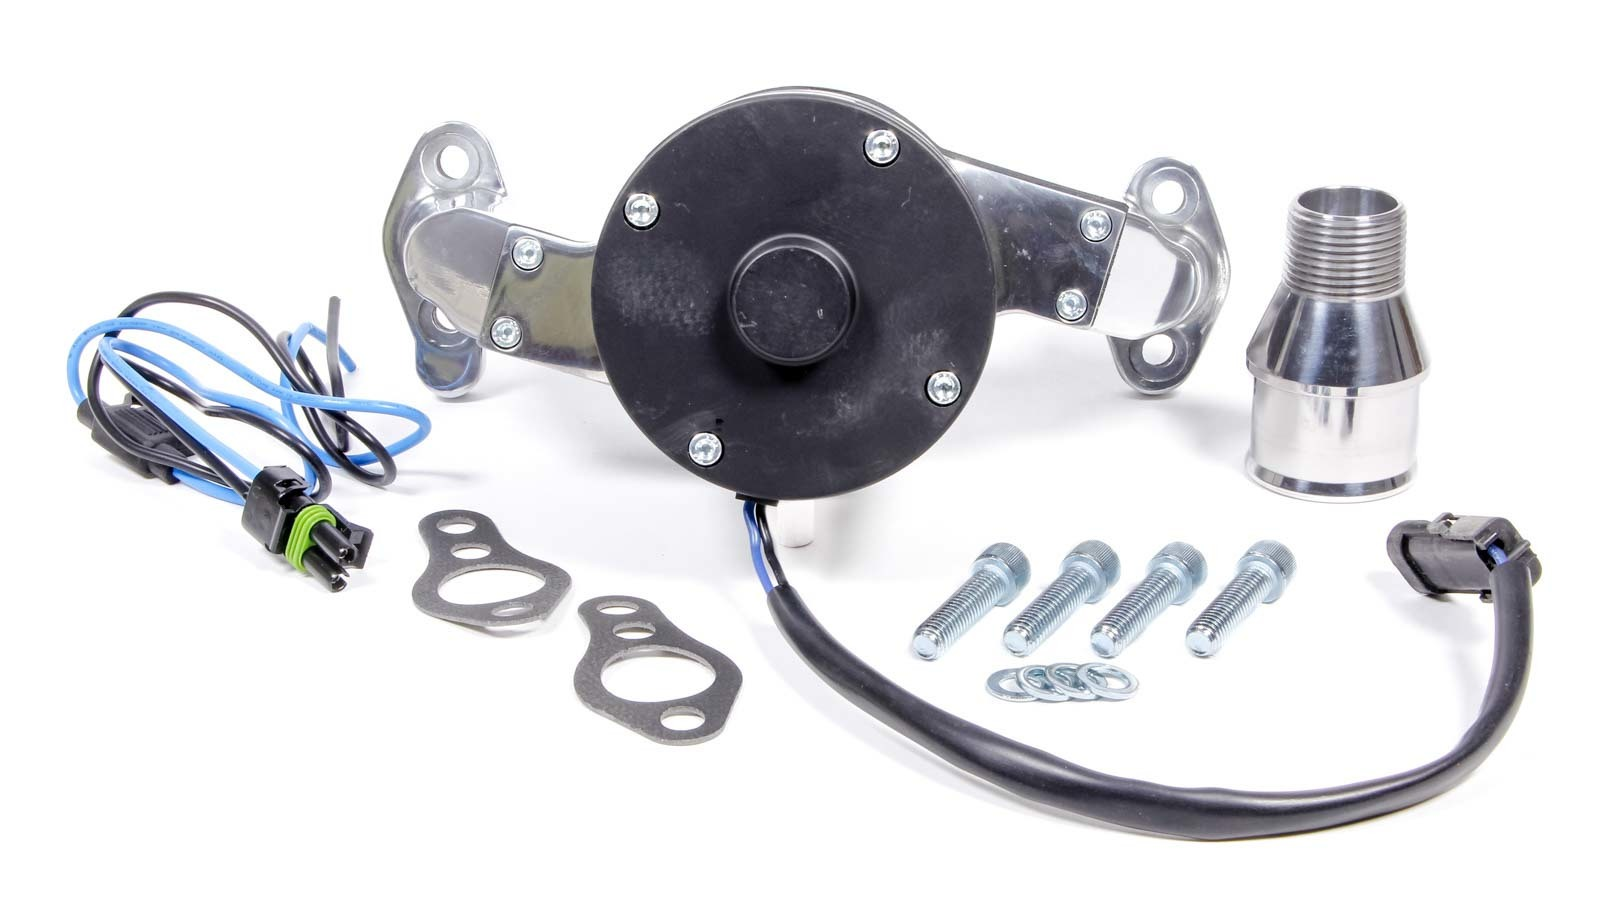 Proform 66225P Water Pump, Electric, 1 in NPT Female Inlet, Adapter / Gaskets / Hardware, Billet Aluminum, Polished, Small Block Chevy, Kit